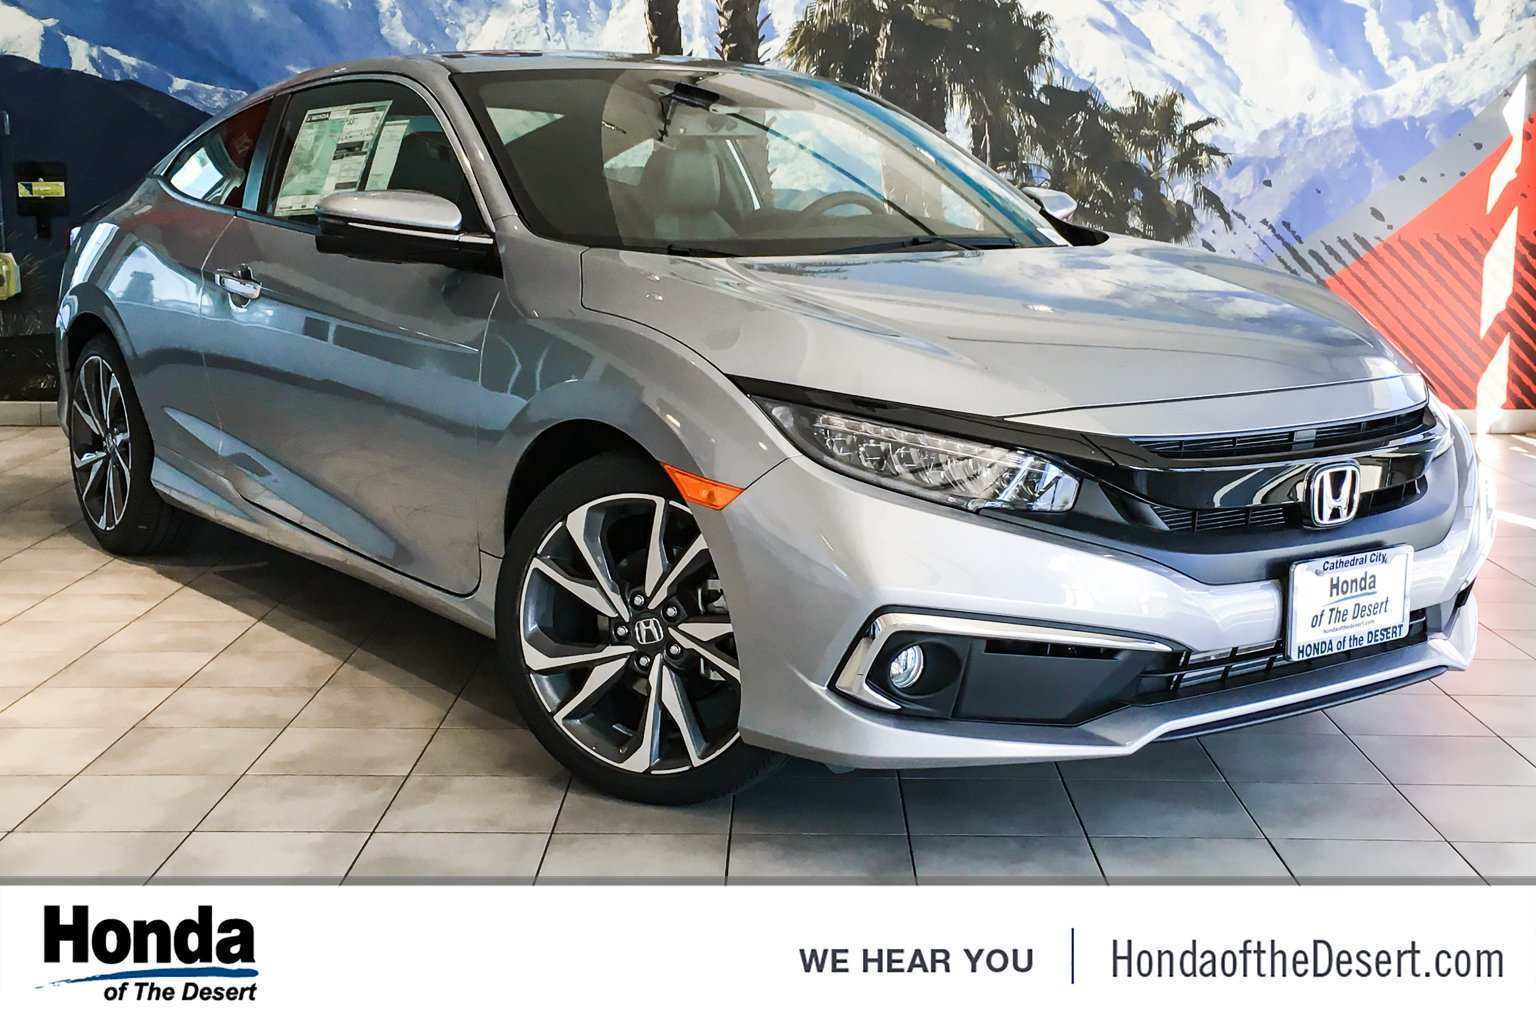 81 The Best 2019 Honda Civic Price Design And Review